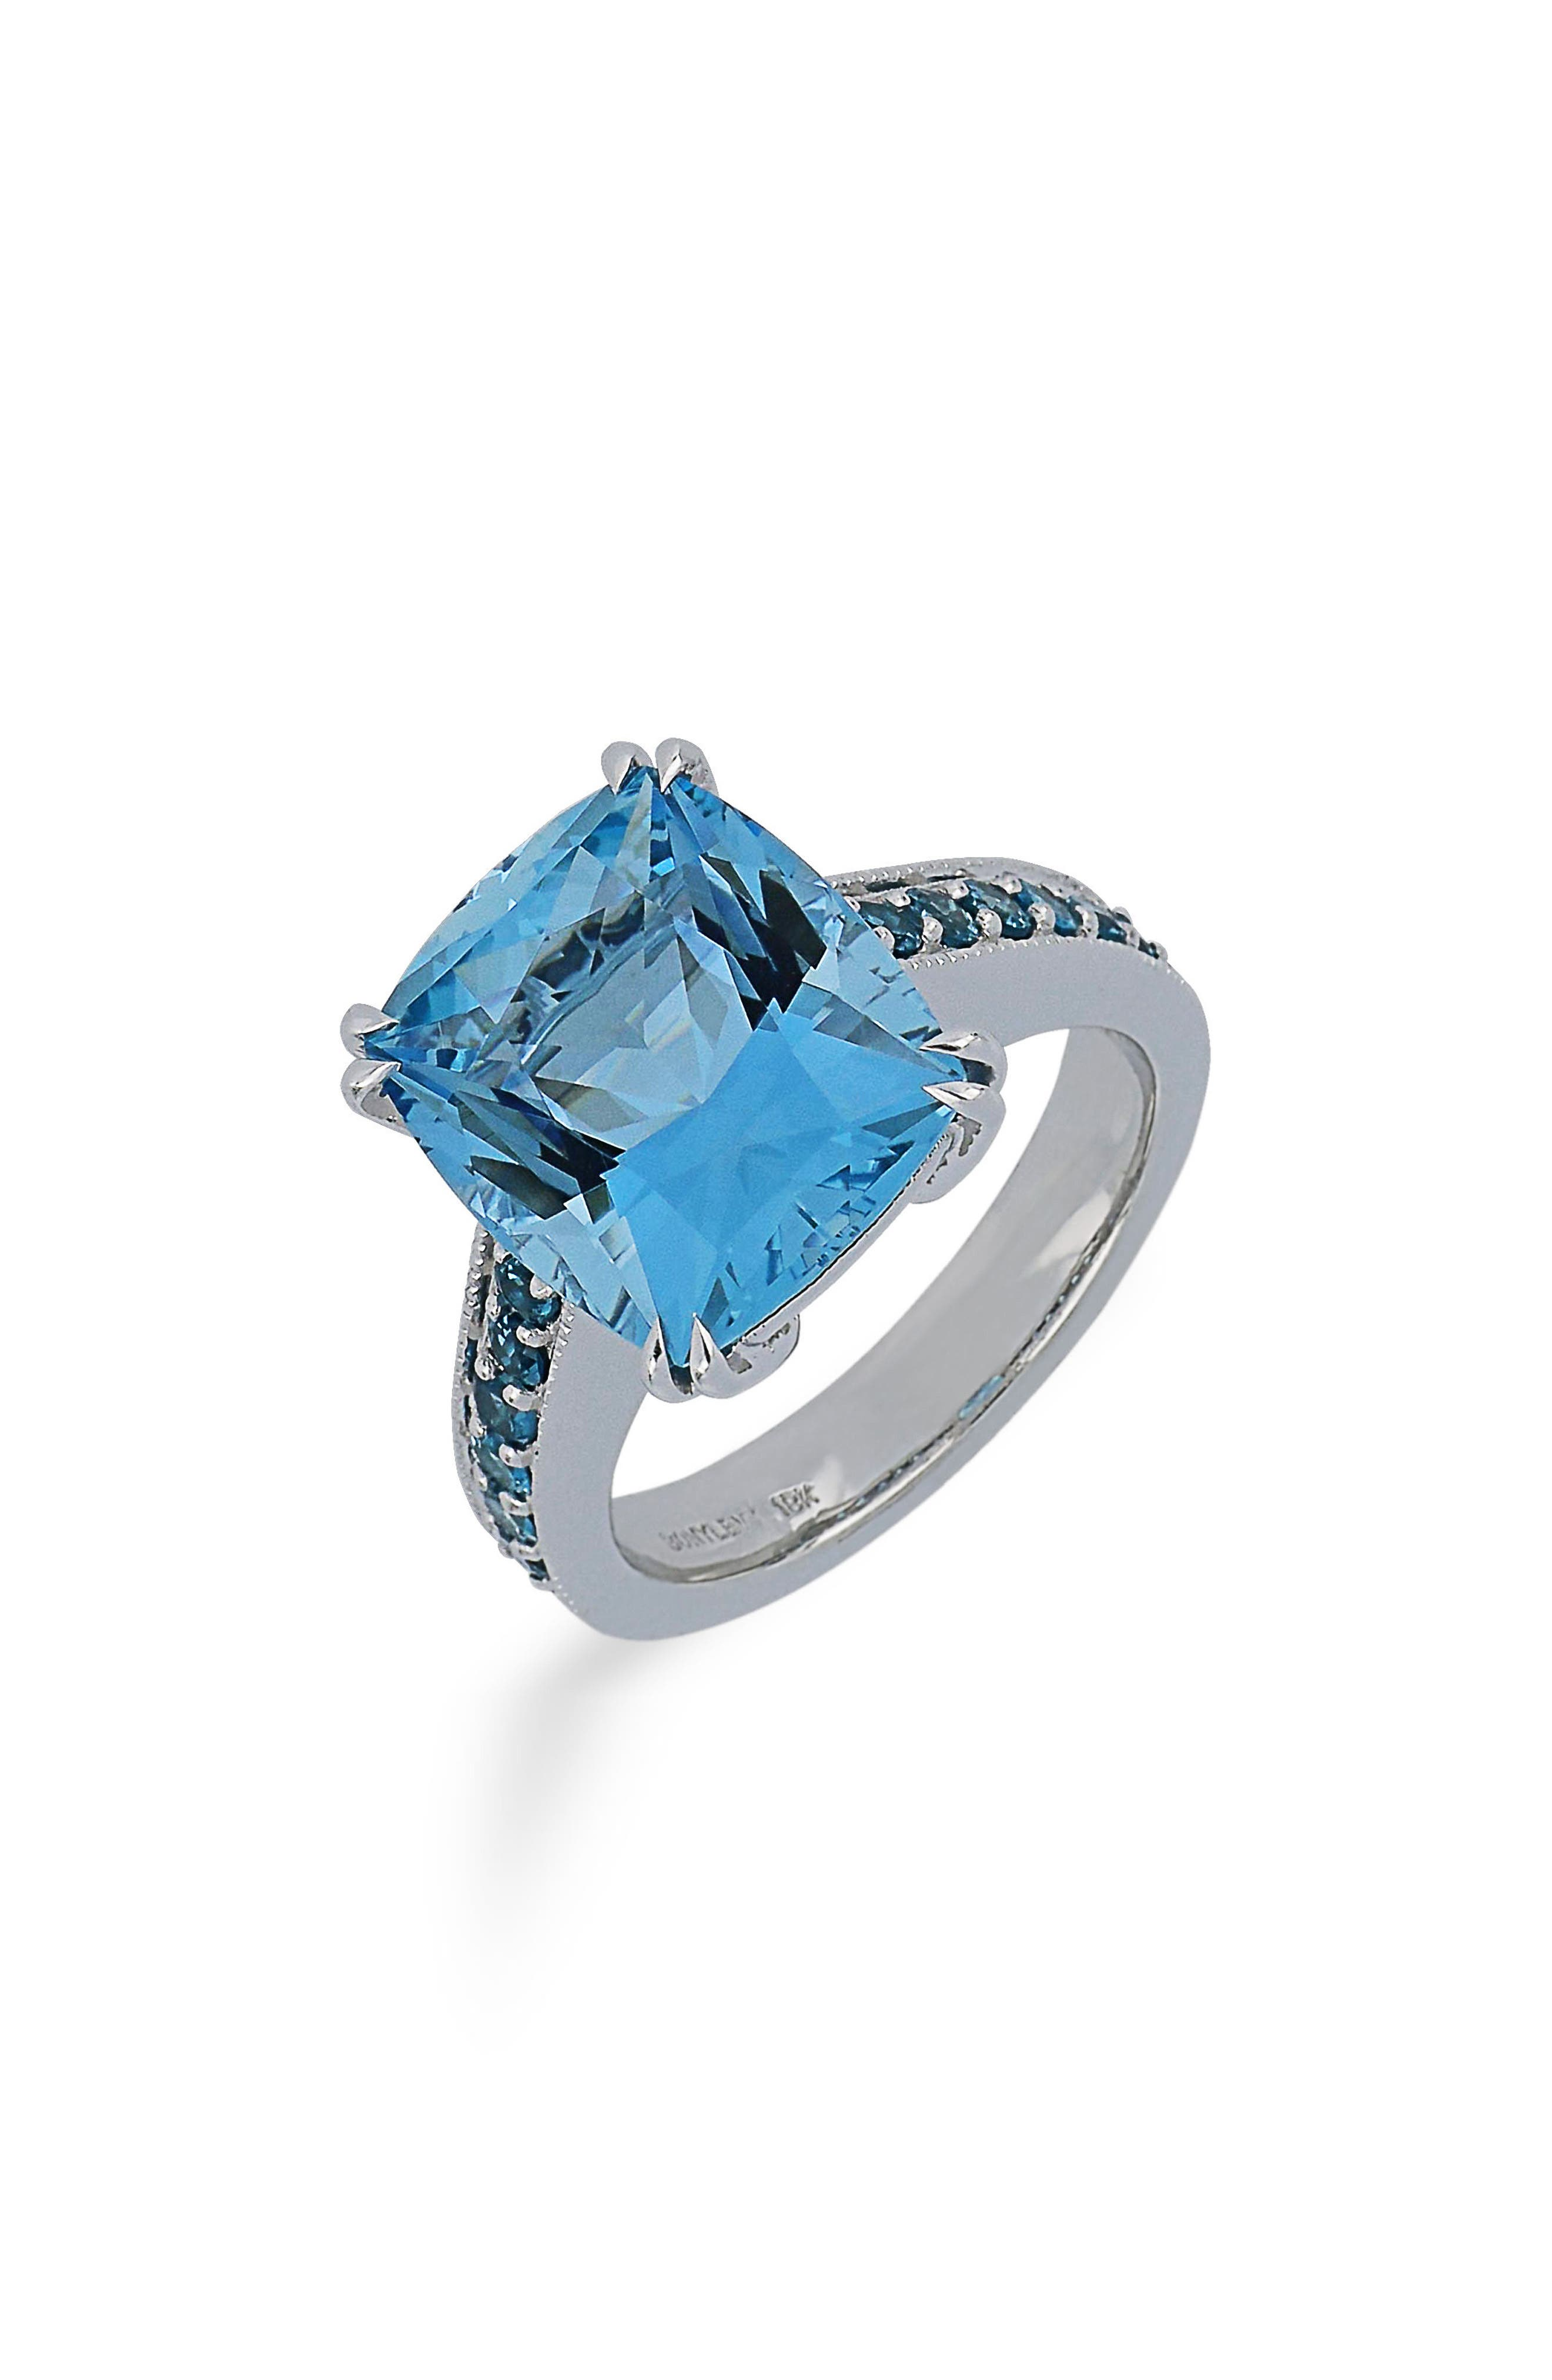 Main Image - Bony Levy Aquamarine & Blue Topaz Ring (Nordstrom Exclusive)